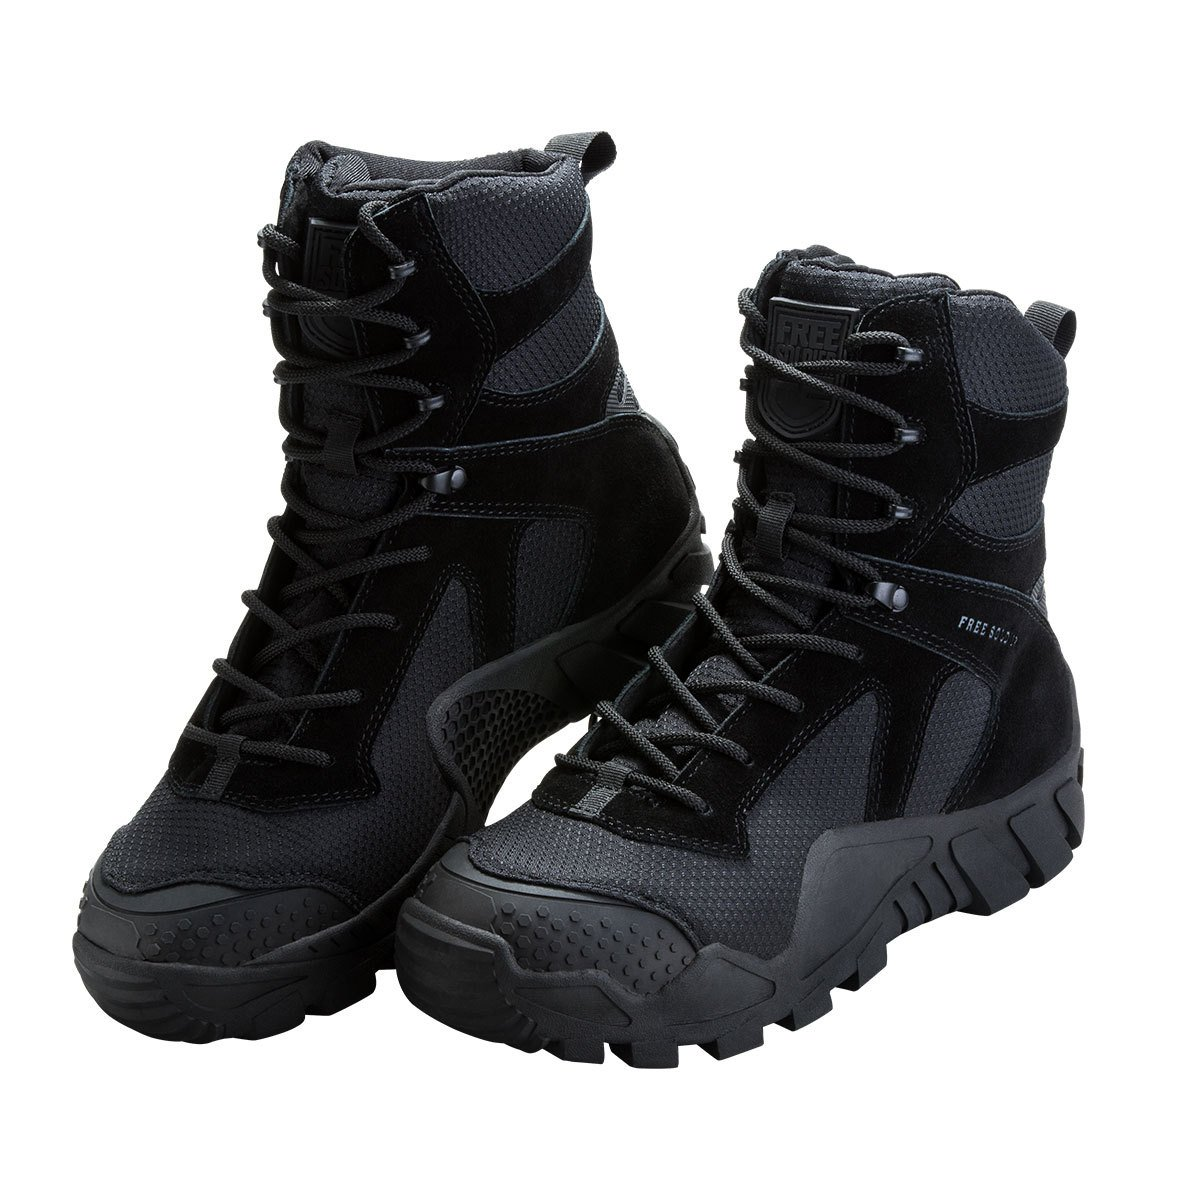 692734f21c220 DURABLE -- Shoes Upper made of anti-fur leather with width of 1.6 to 1.8mm,  scratch-resistant. Durable nylon mesh upper stands up to the harsh  environments.